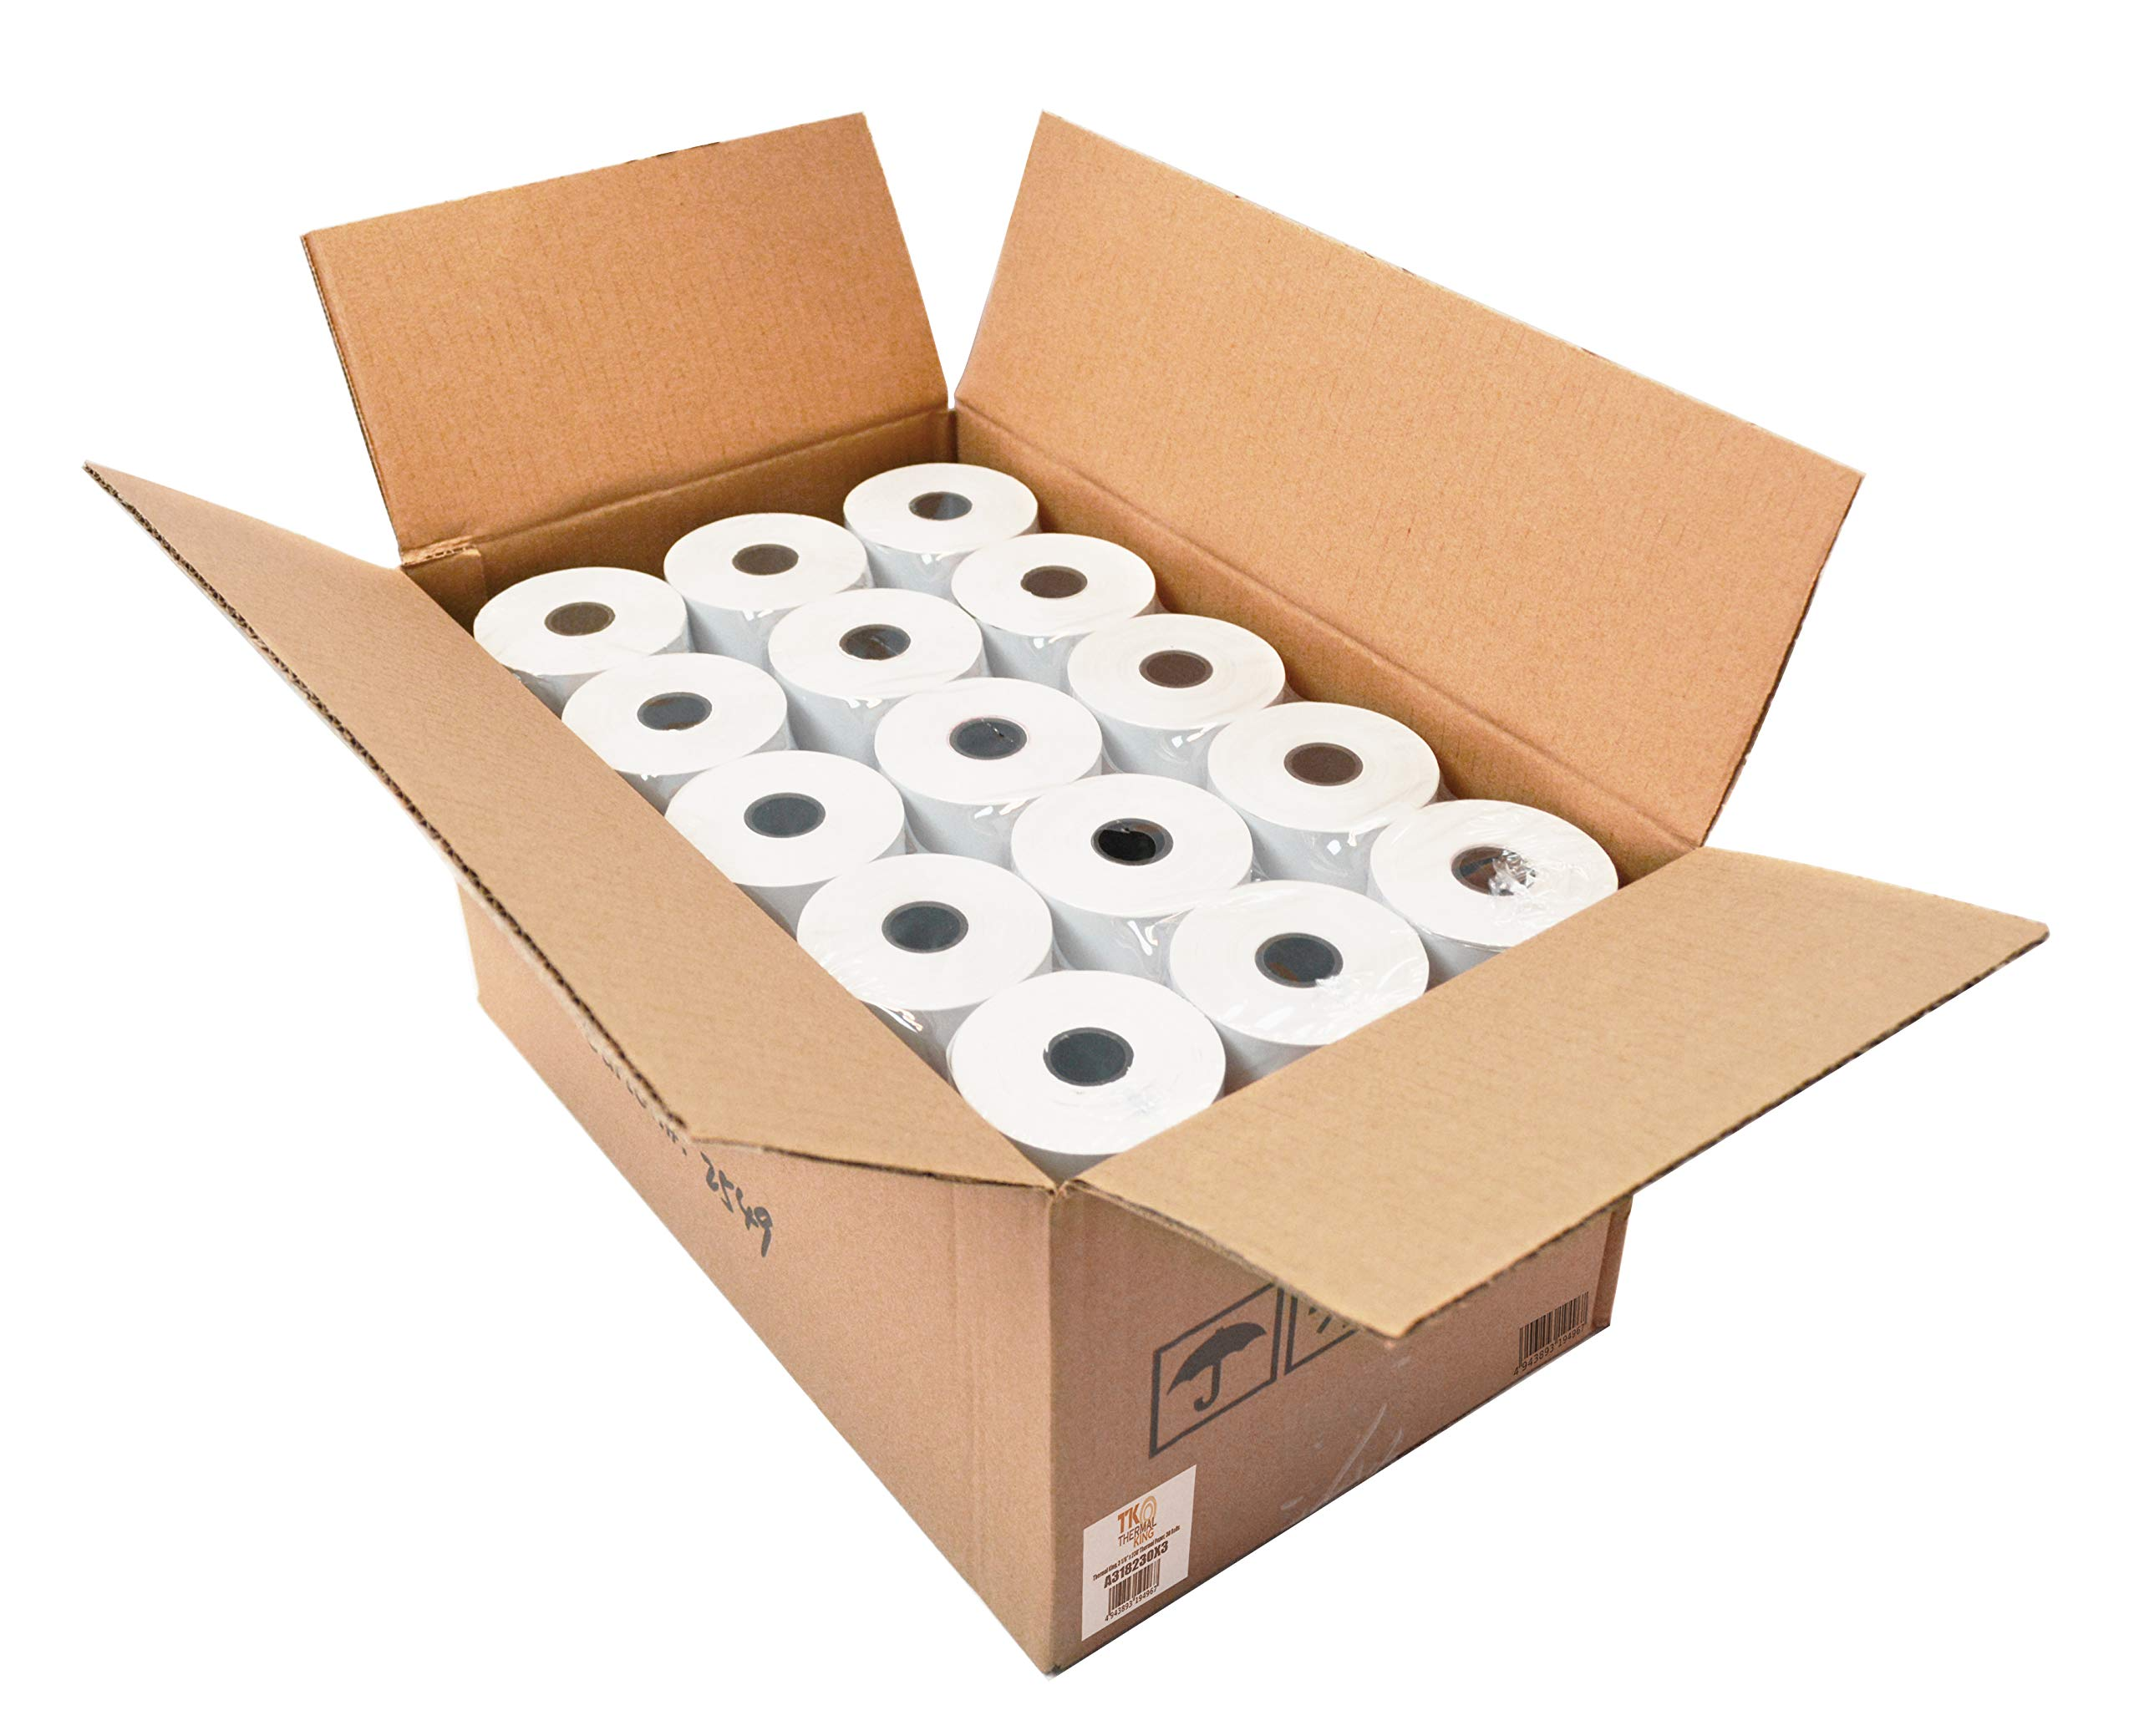 Thermal King, Thermal Credit Card Paper (3 1/8'' x 230' - 30 Rolls) [Thermal King Brand] by TK Thermal King